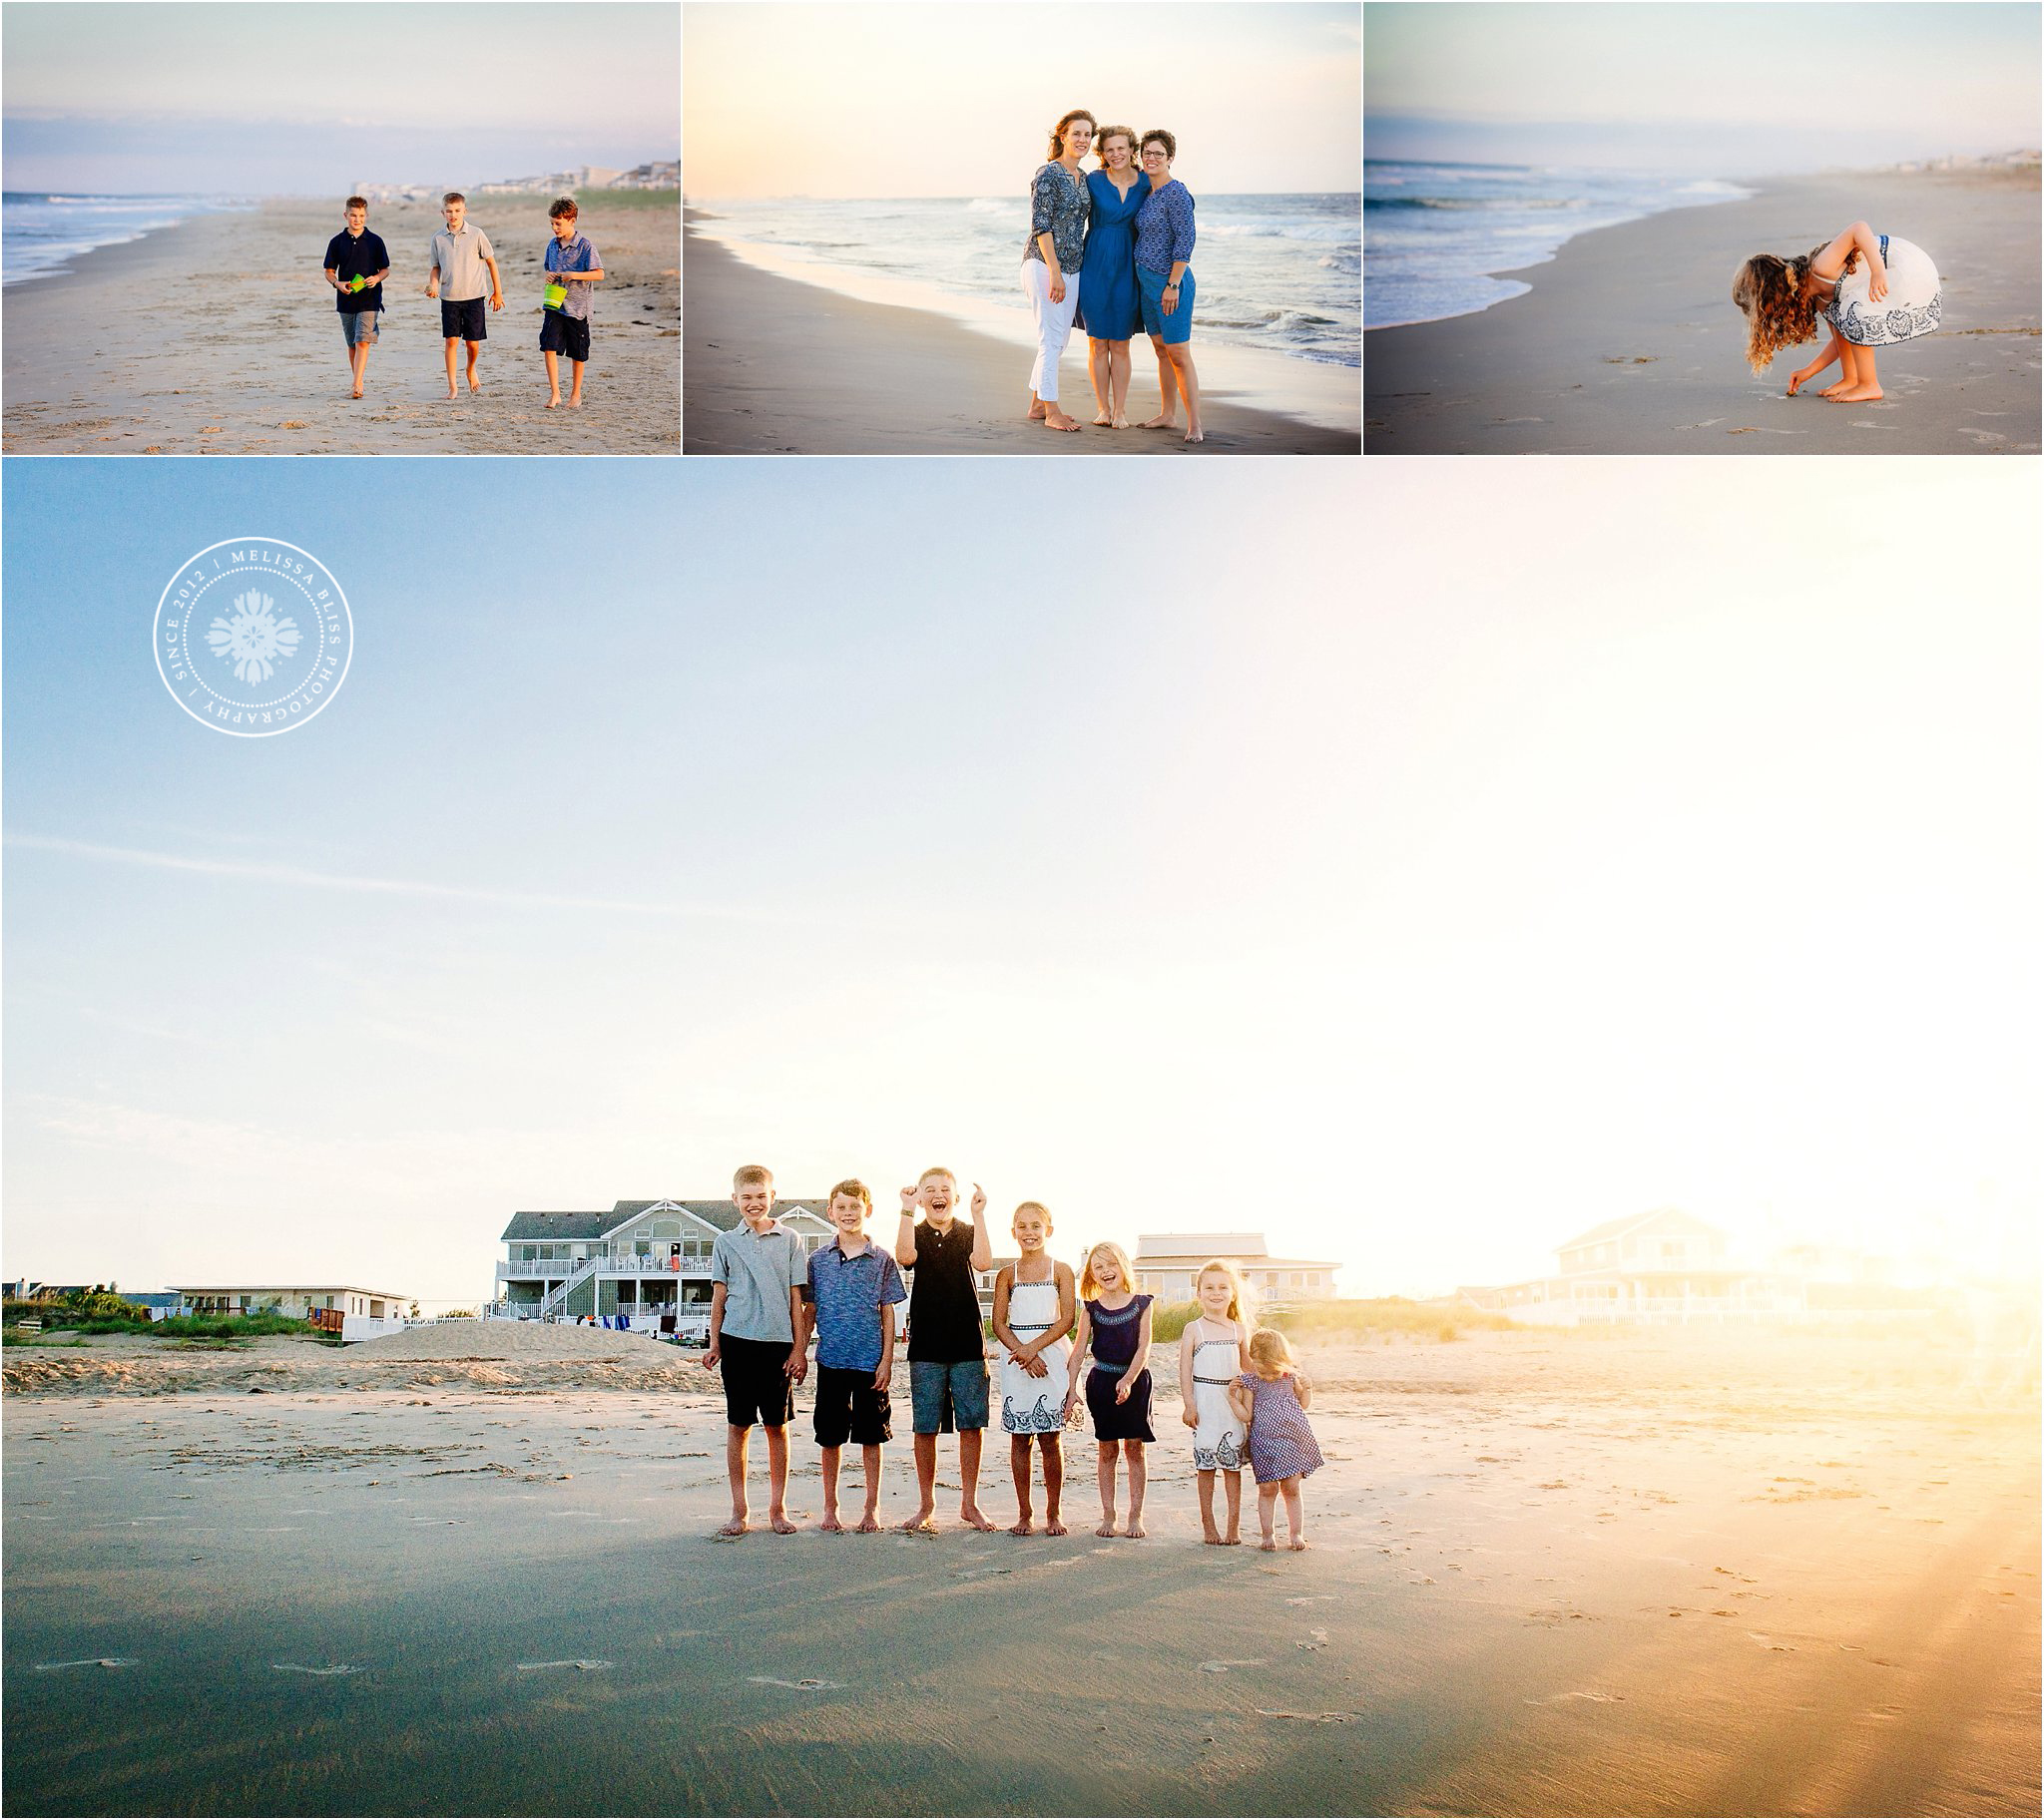 sandbridge-beach-photographer-virginia-beach-family-photographer-norfolk-chesapeake-photographer-melissa-bliss-photography-lifestyle-family-photos